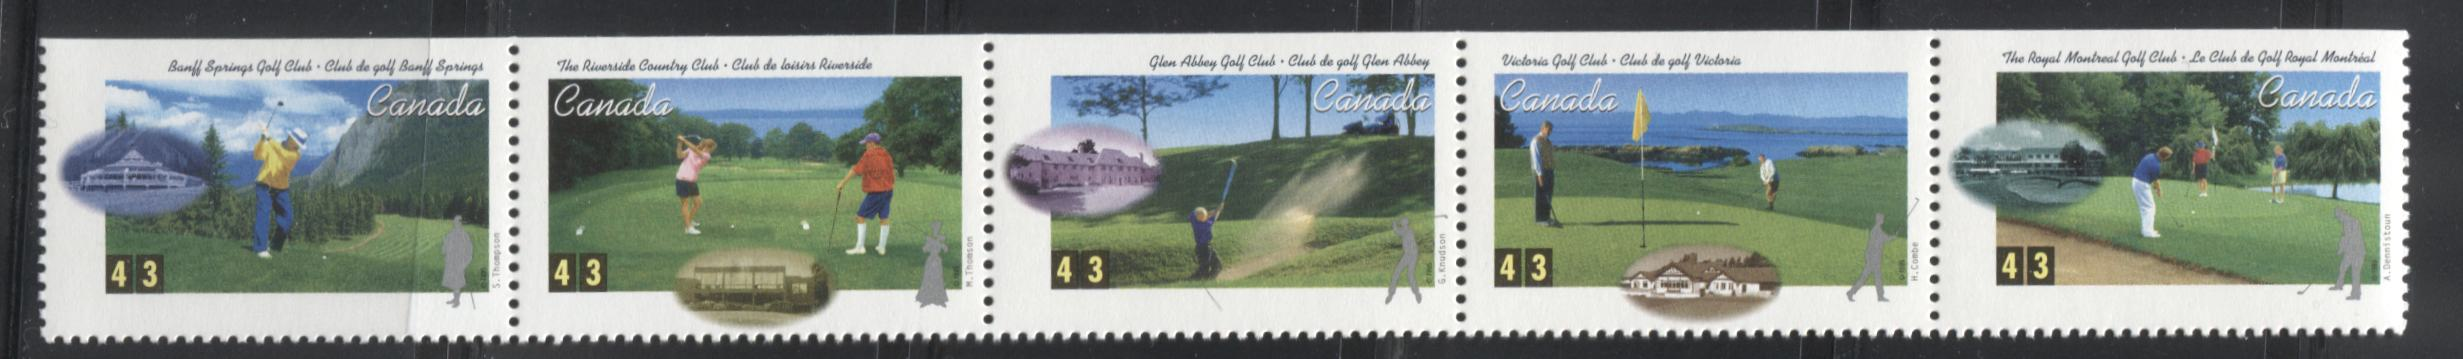 Canada #1553ai 43c Multicoloured 1995 Golf in Canada Issue, a VFNH Unfolded Booklet Strip of 5 From the Quarterly Pack